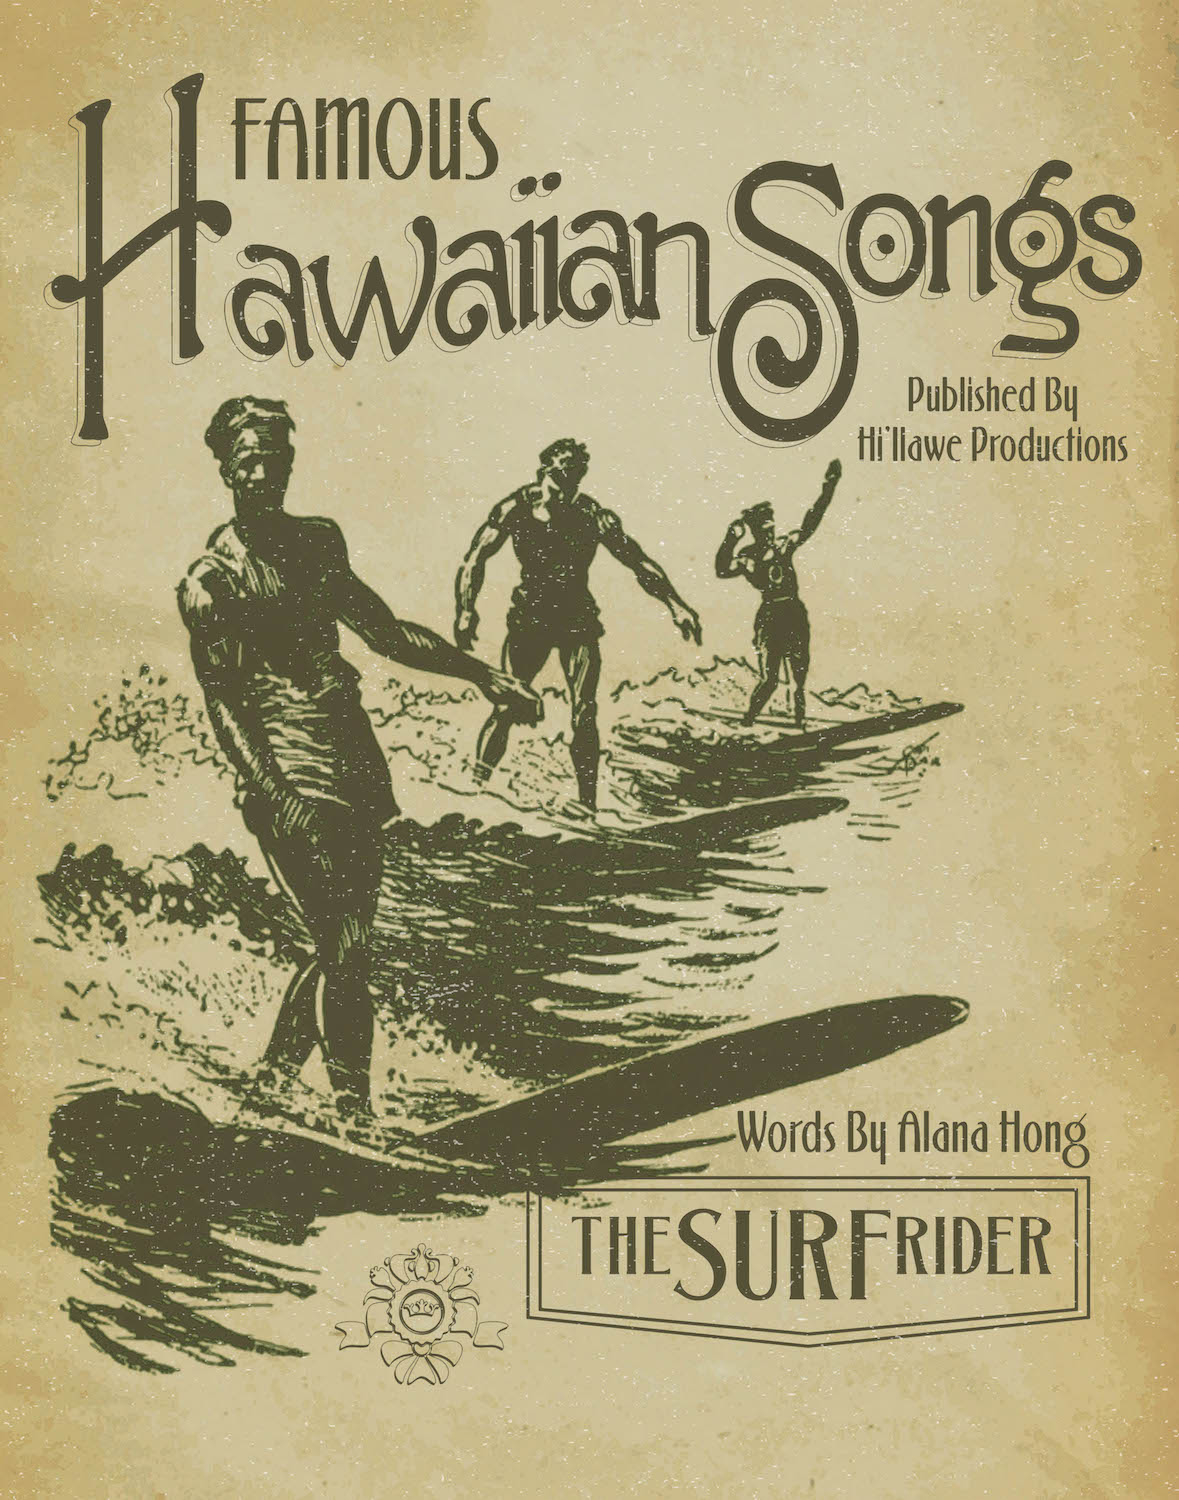 HAWAIIANsongs sheetmusic 11x14 v1.jpg